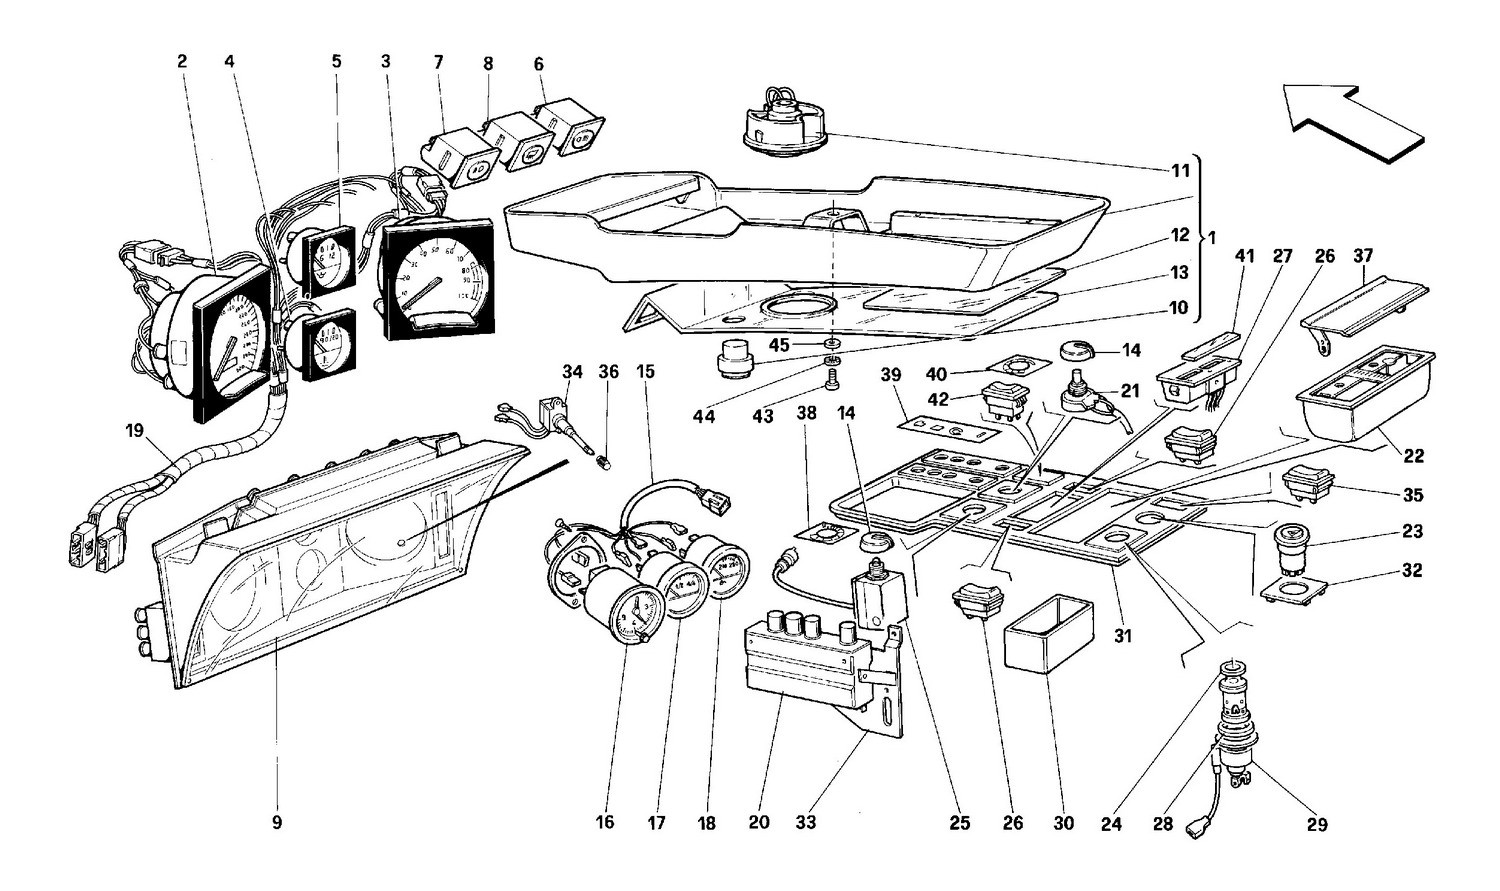 Instruments and passenger compartment accessories